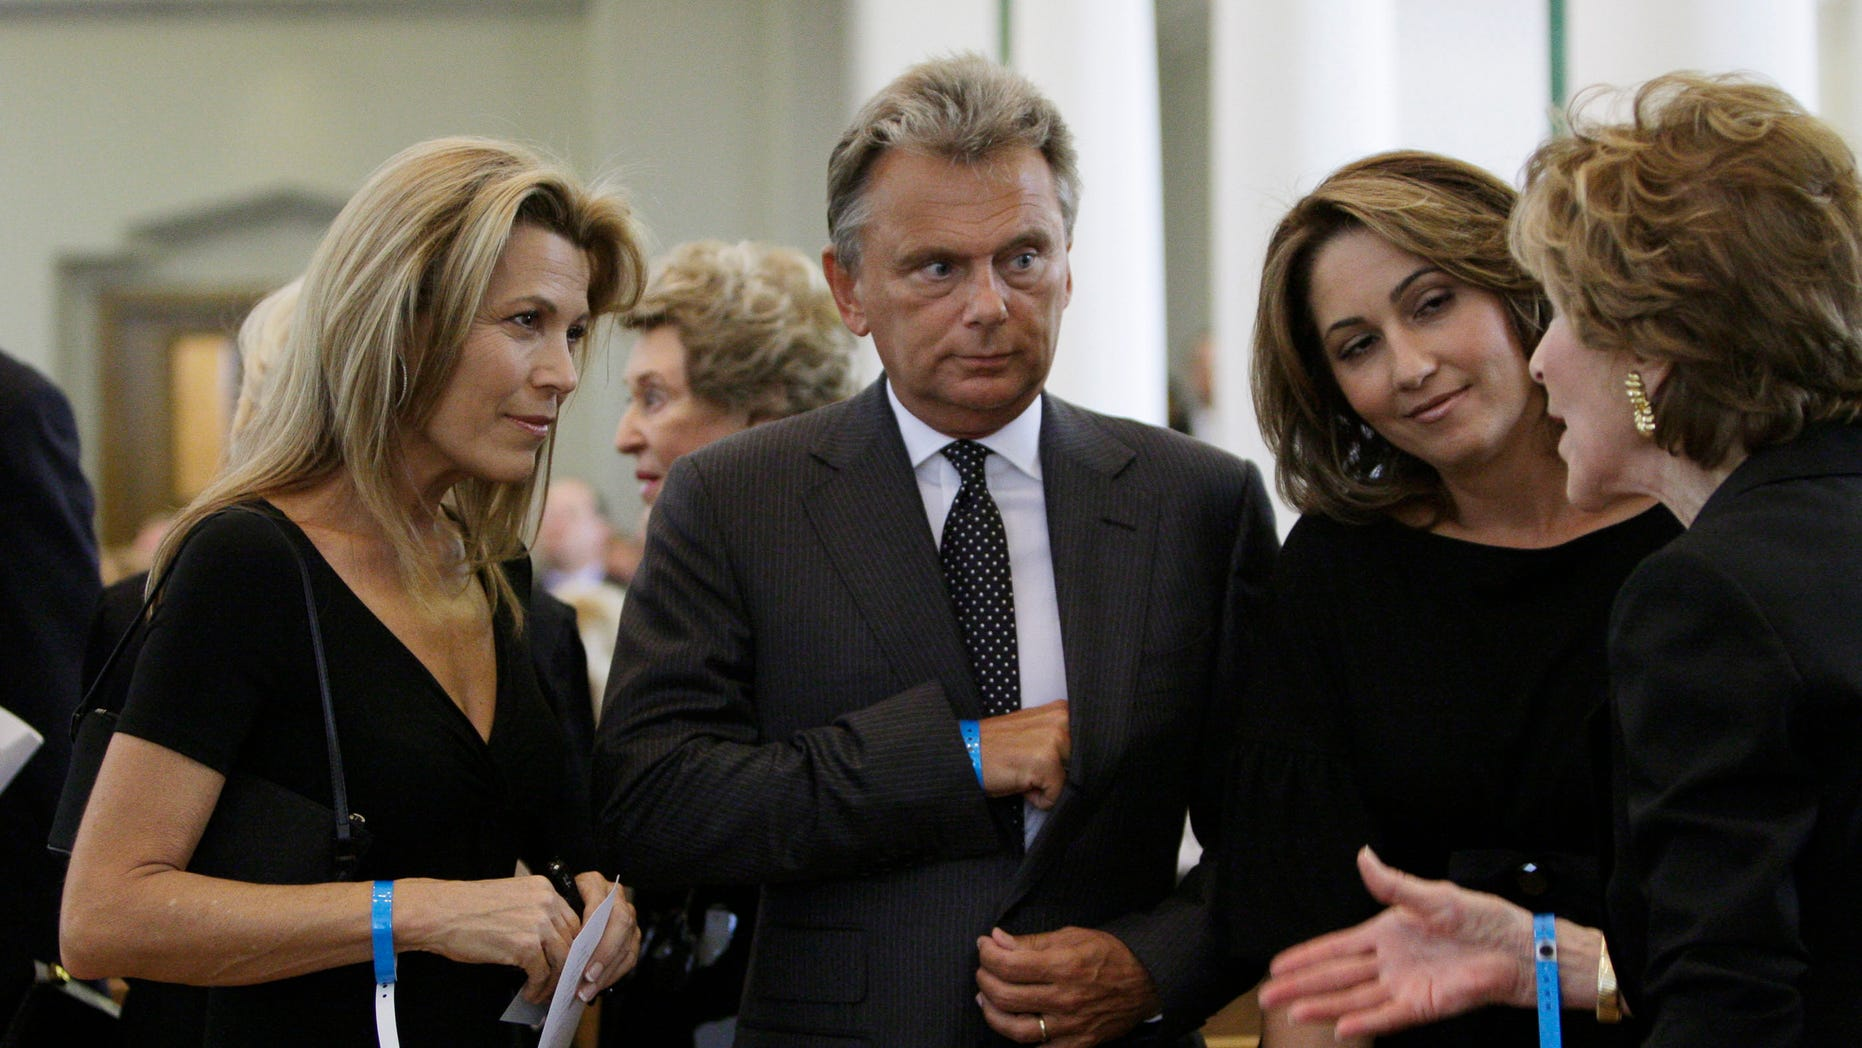 Vanna White (L) and Pat Sajak (C), television personalities from the 'Wheel of Fortune' game show created by Merv Griffin, and Sajak's wife Lesly Brown Sajak (2nd R) listen to an unidentified woman prior to funeral services for Griffin in Beverly Hills, California, August 17, 2007. Griffin died August 12, 2007 of prostate cancer at the age of 82. REUTERS/Kevork Djansezian/Pool  (UNITED STATES) - RTR1SVAK